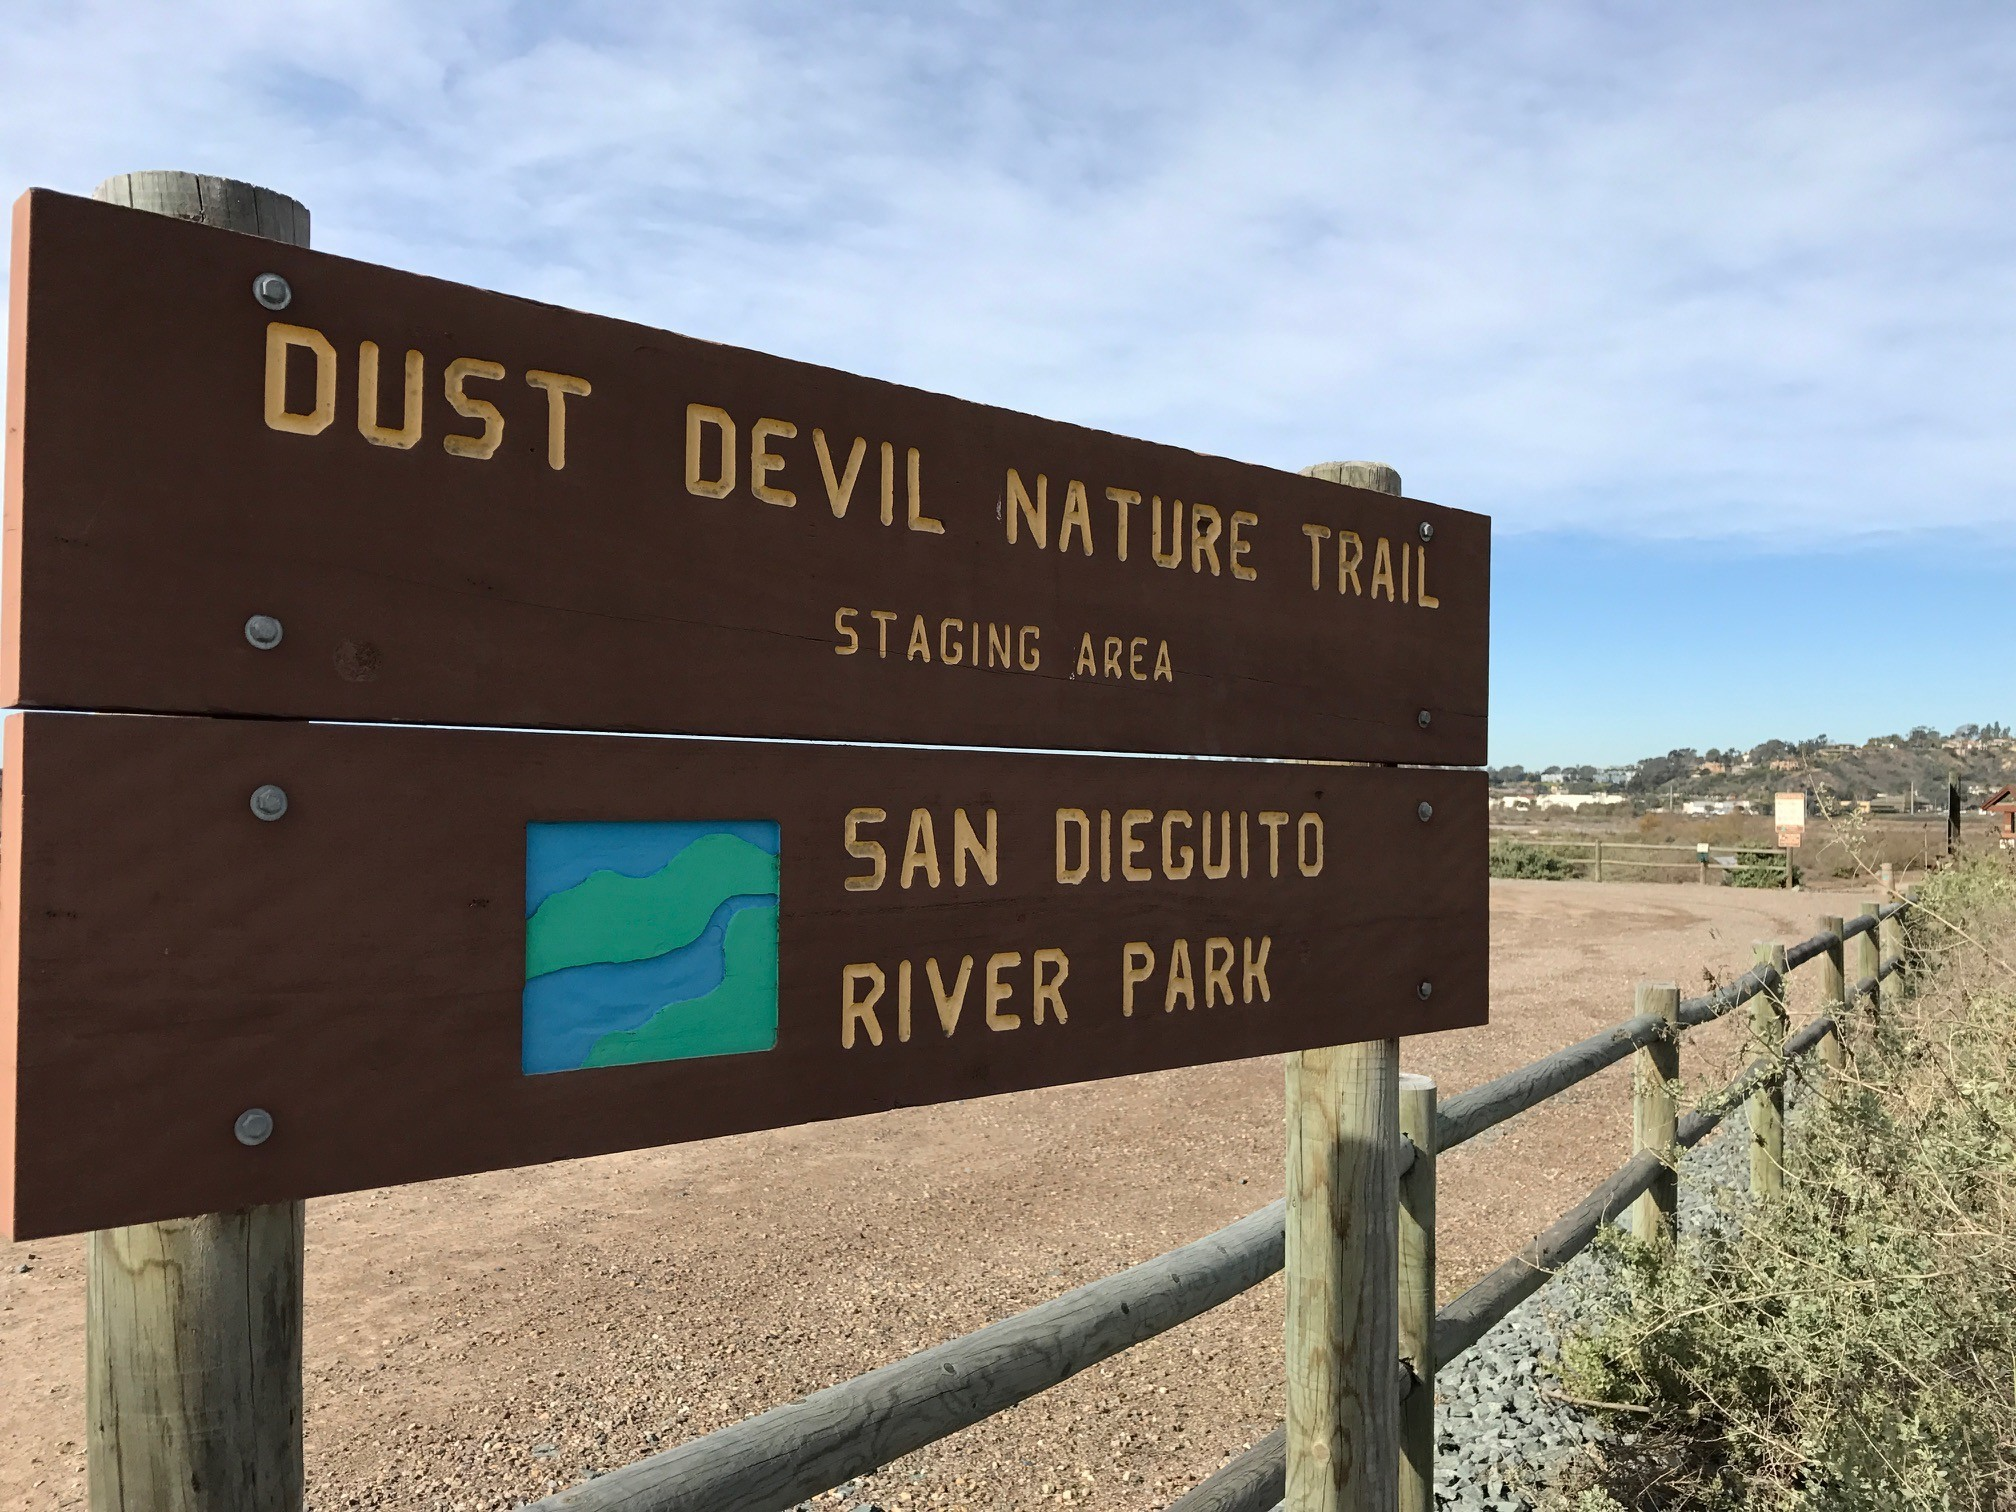 The Dust Devil trailhead on El Camino Real.